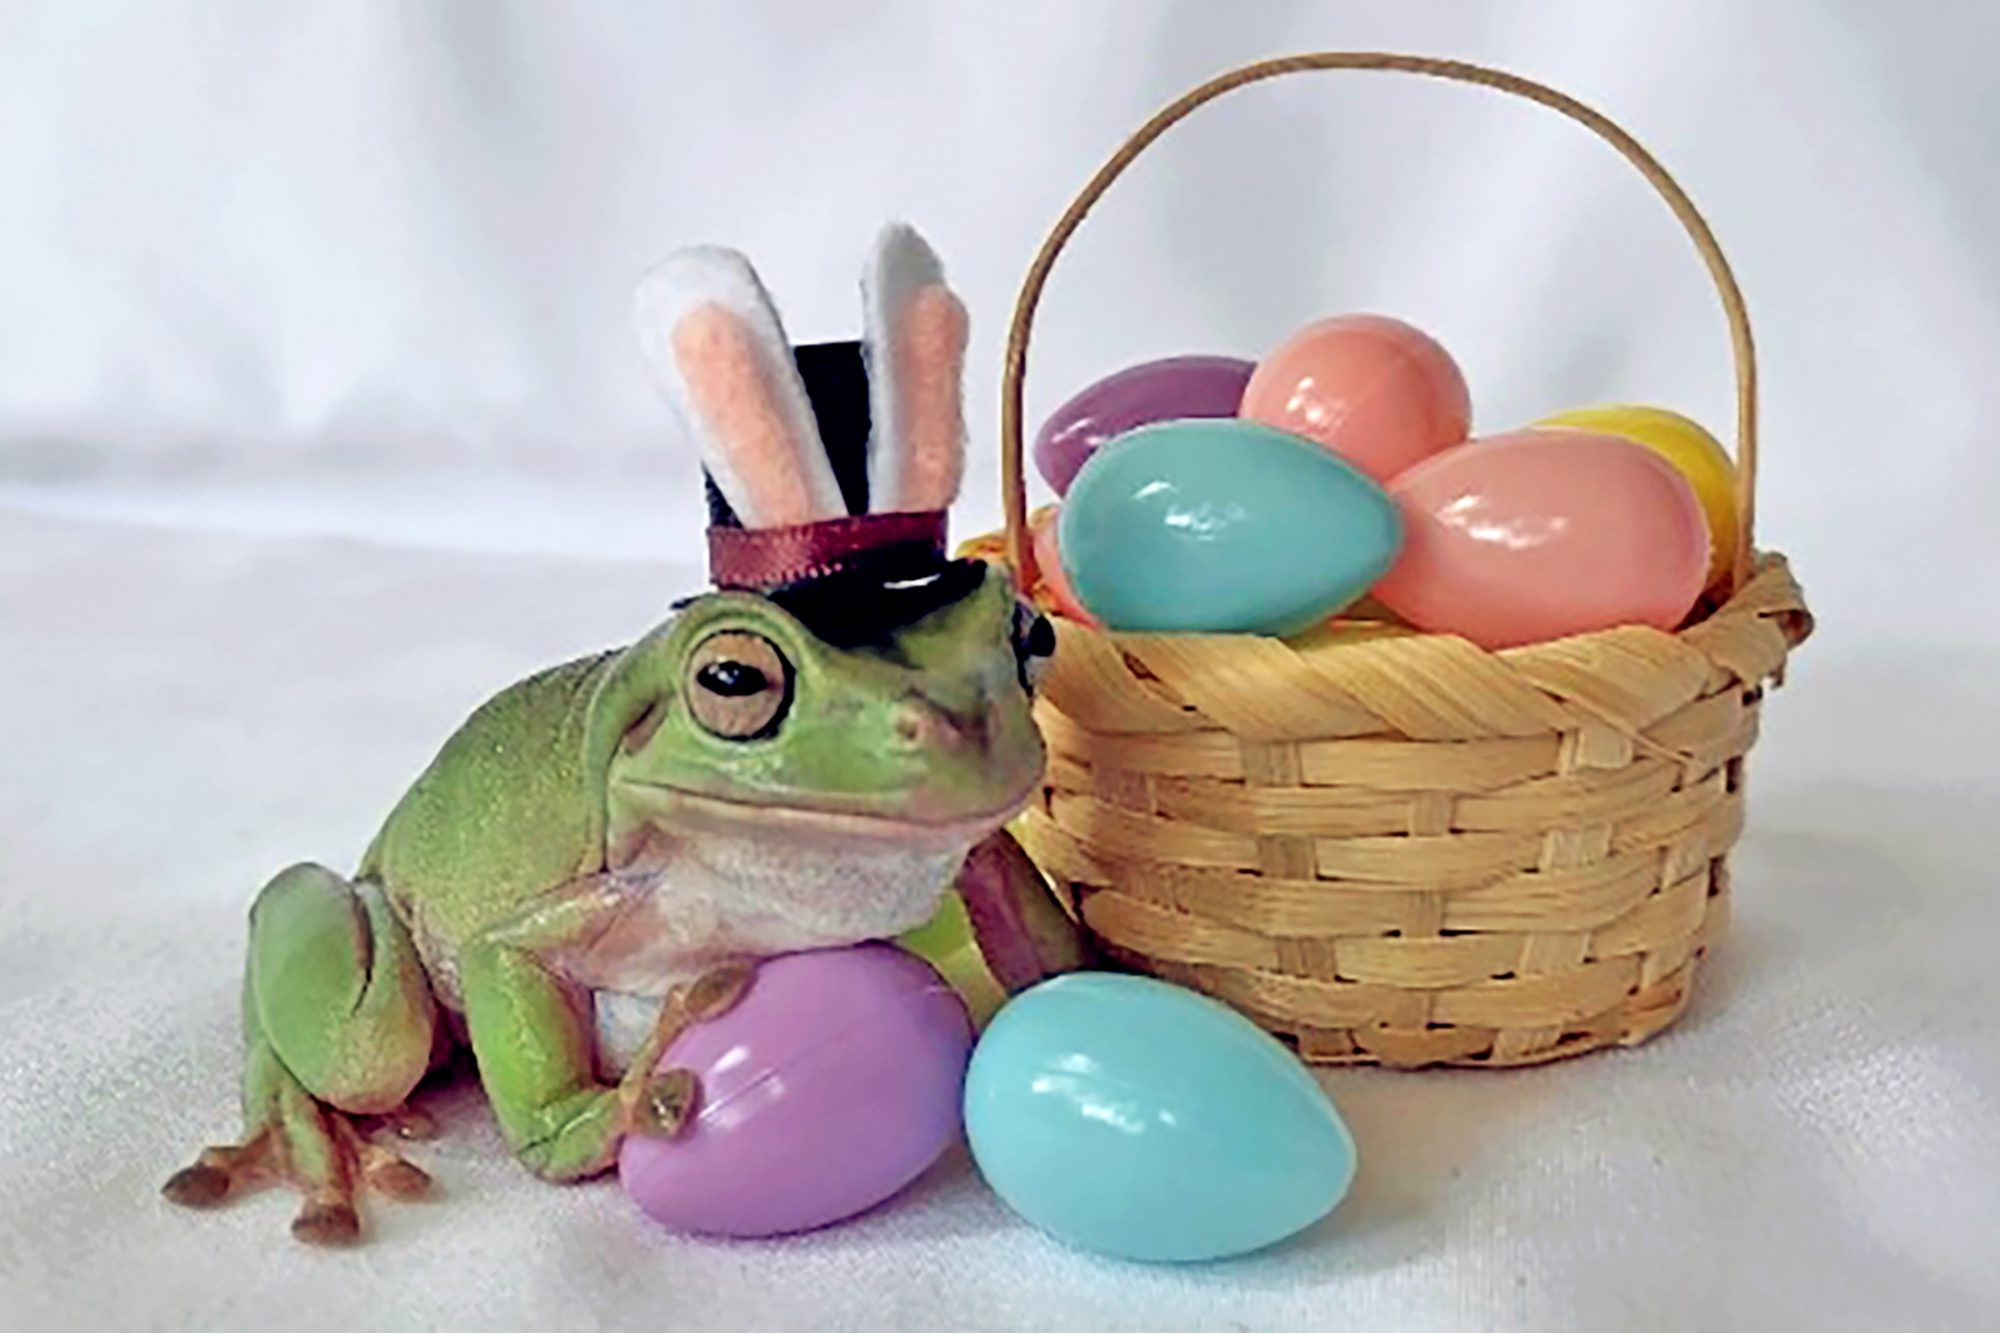 Frog poses with bunny ears and plastic Easter eggs as Cadbury winner